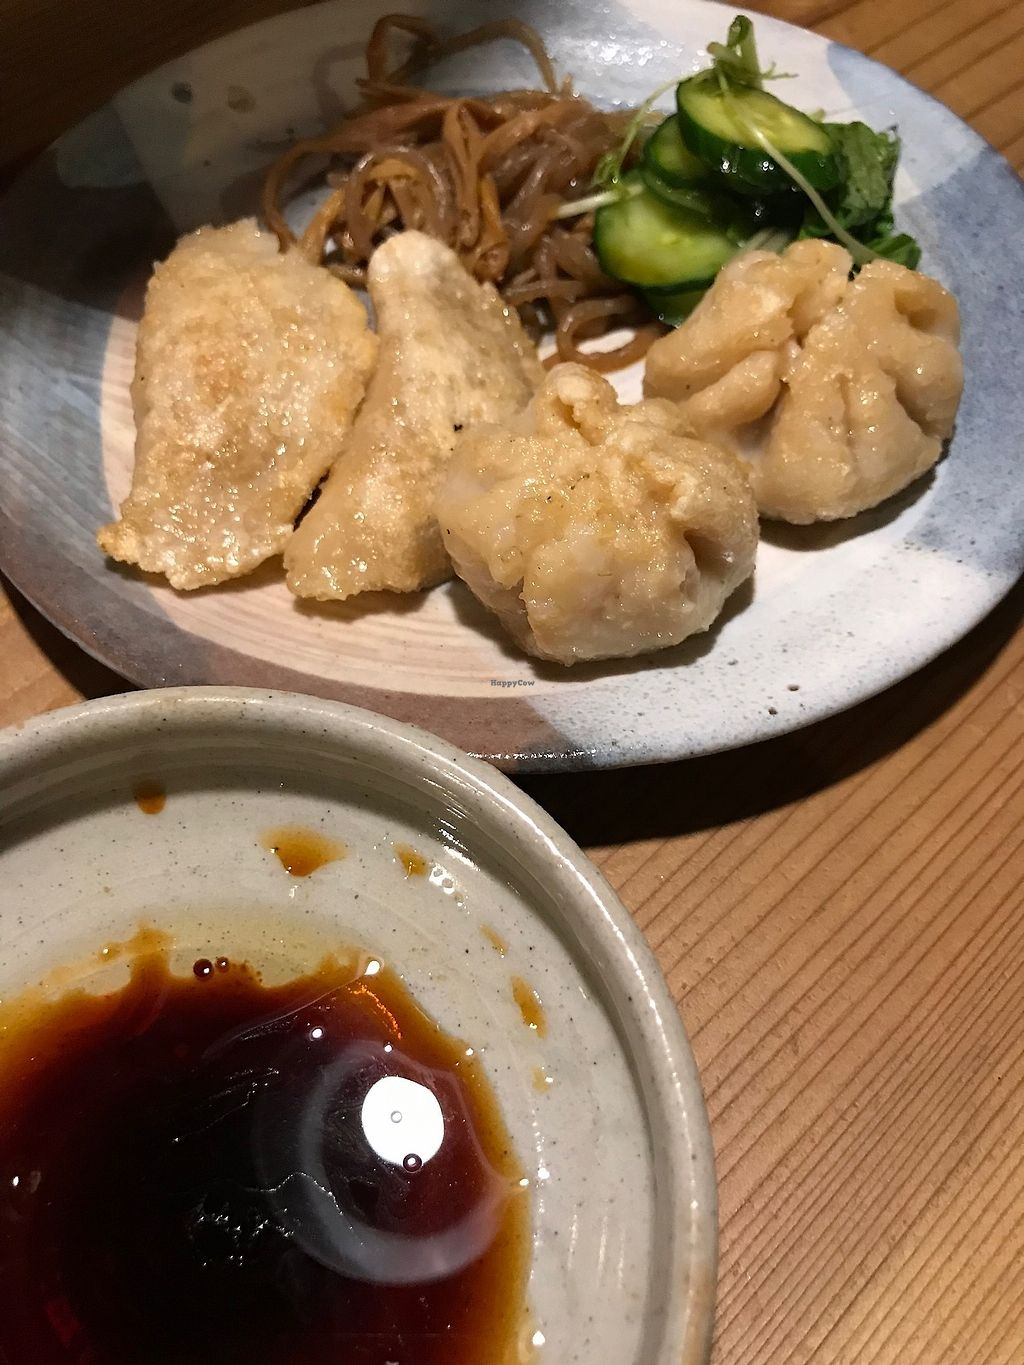 """Photo of Megumi  by <a href=""""/members/profile/zubora"""">zubora</a> <br/>Vegan gyoza <br/> October 4, 2017  - <a href='/contact/abuse/image/83651/311544'>Report</a>"""